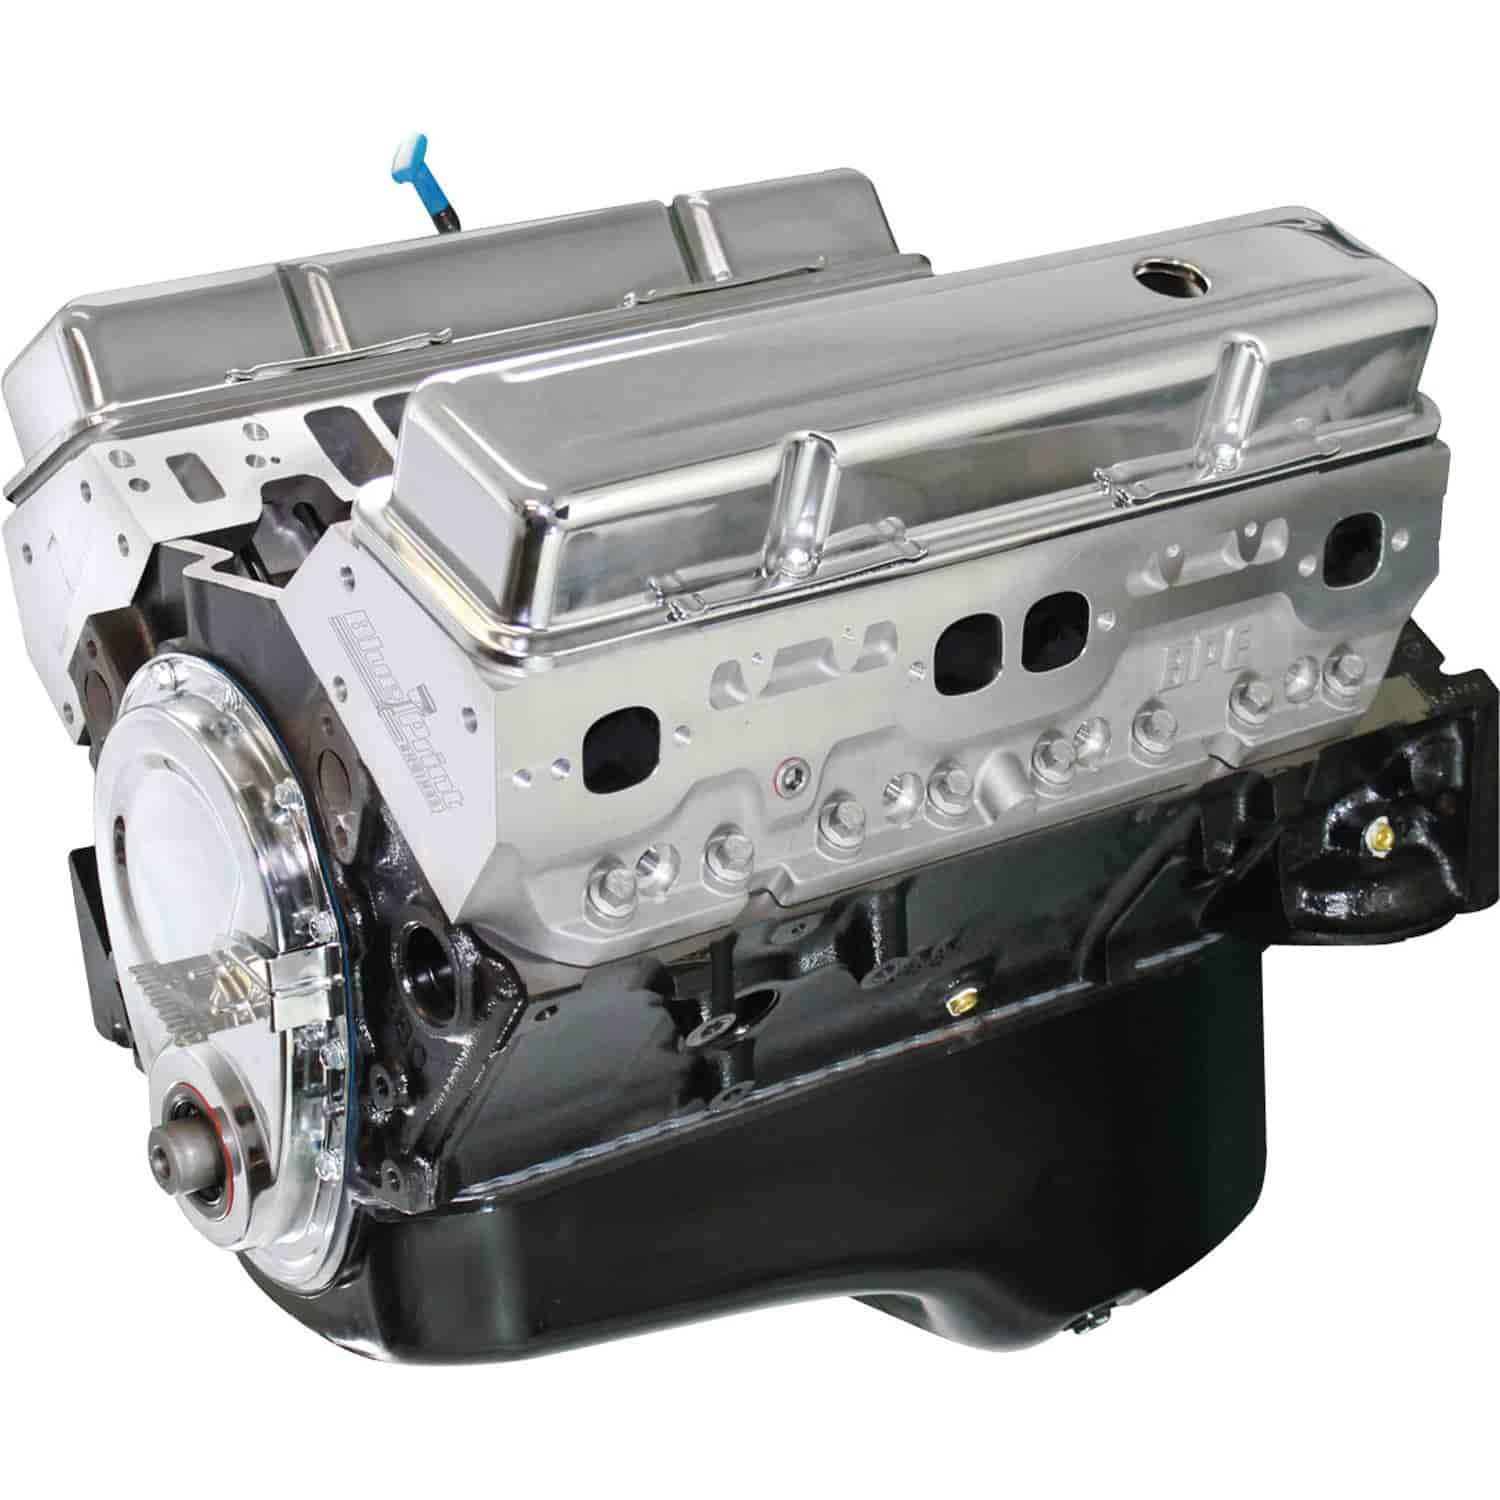 Blueprint Engines BP38313CT1 - Blueprint Engines Small Block Chevy 383ci / 430HP / 450TQ